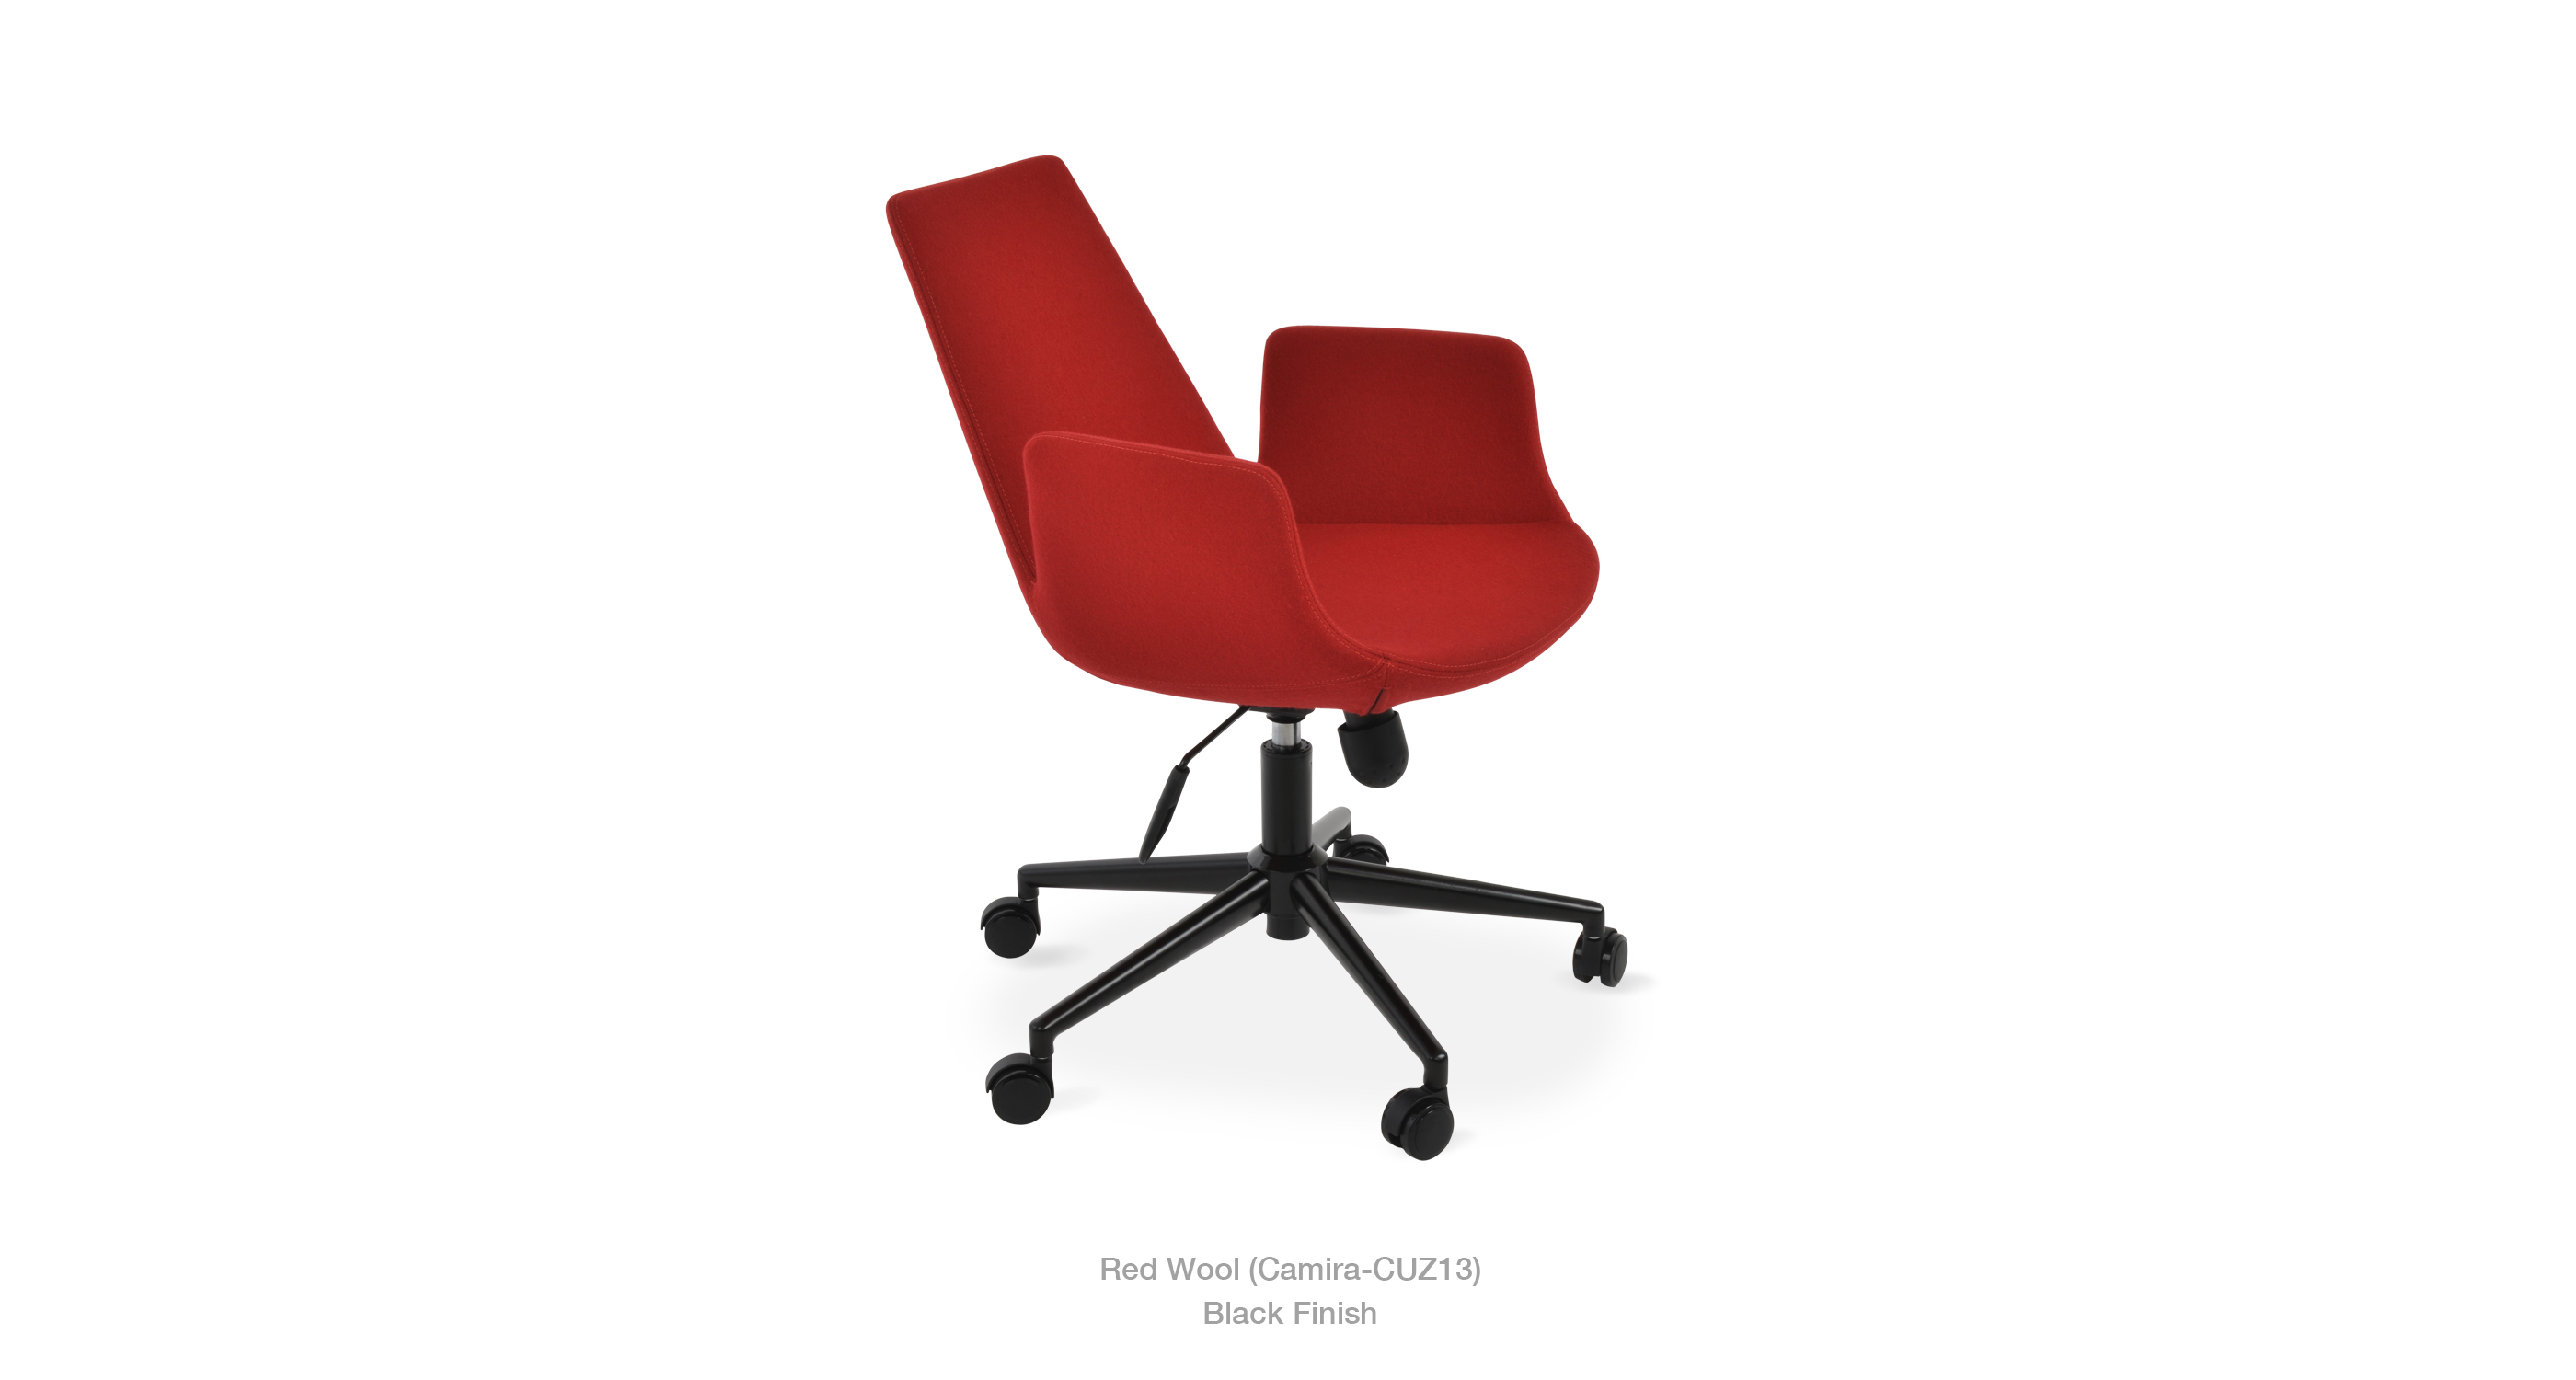 2020 03 05 Eiffel Arm Office Red Wool Black